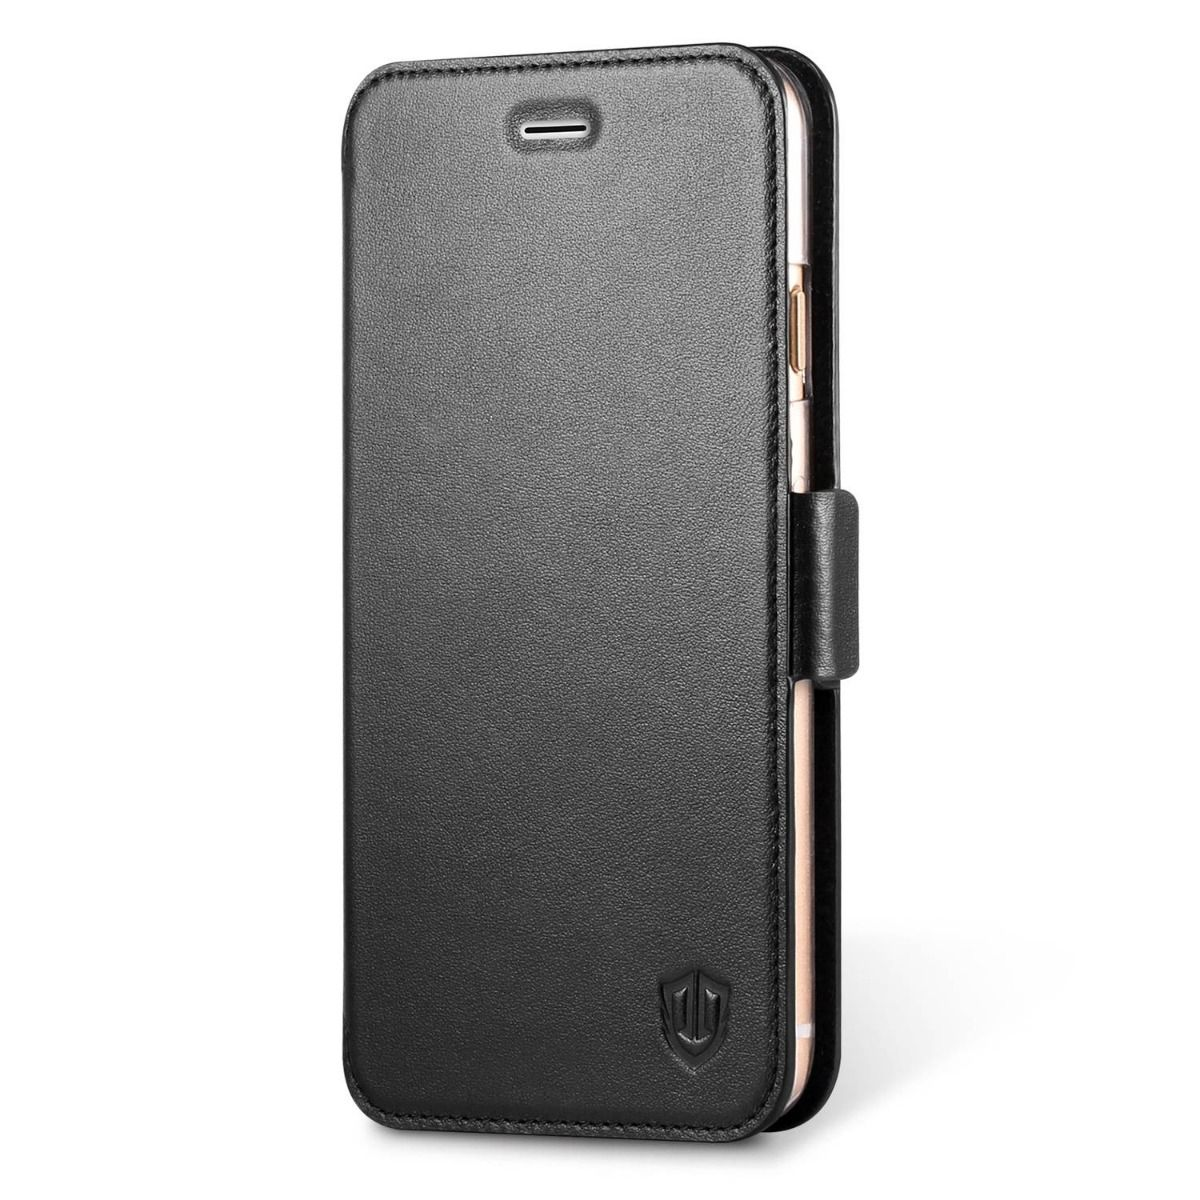 shieldon iphone 6 plus case